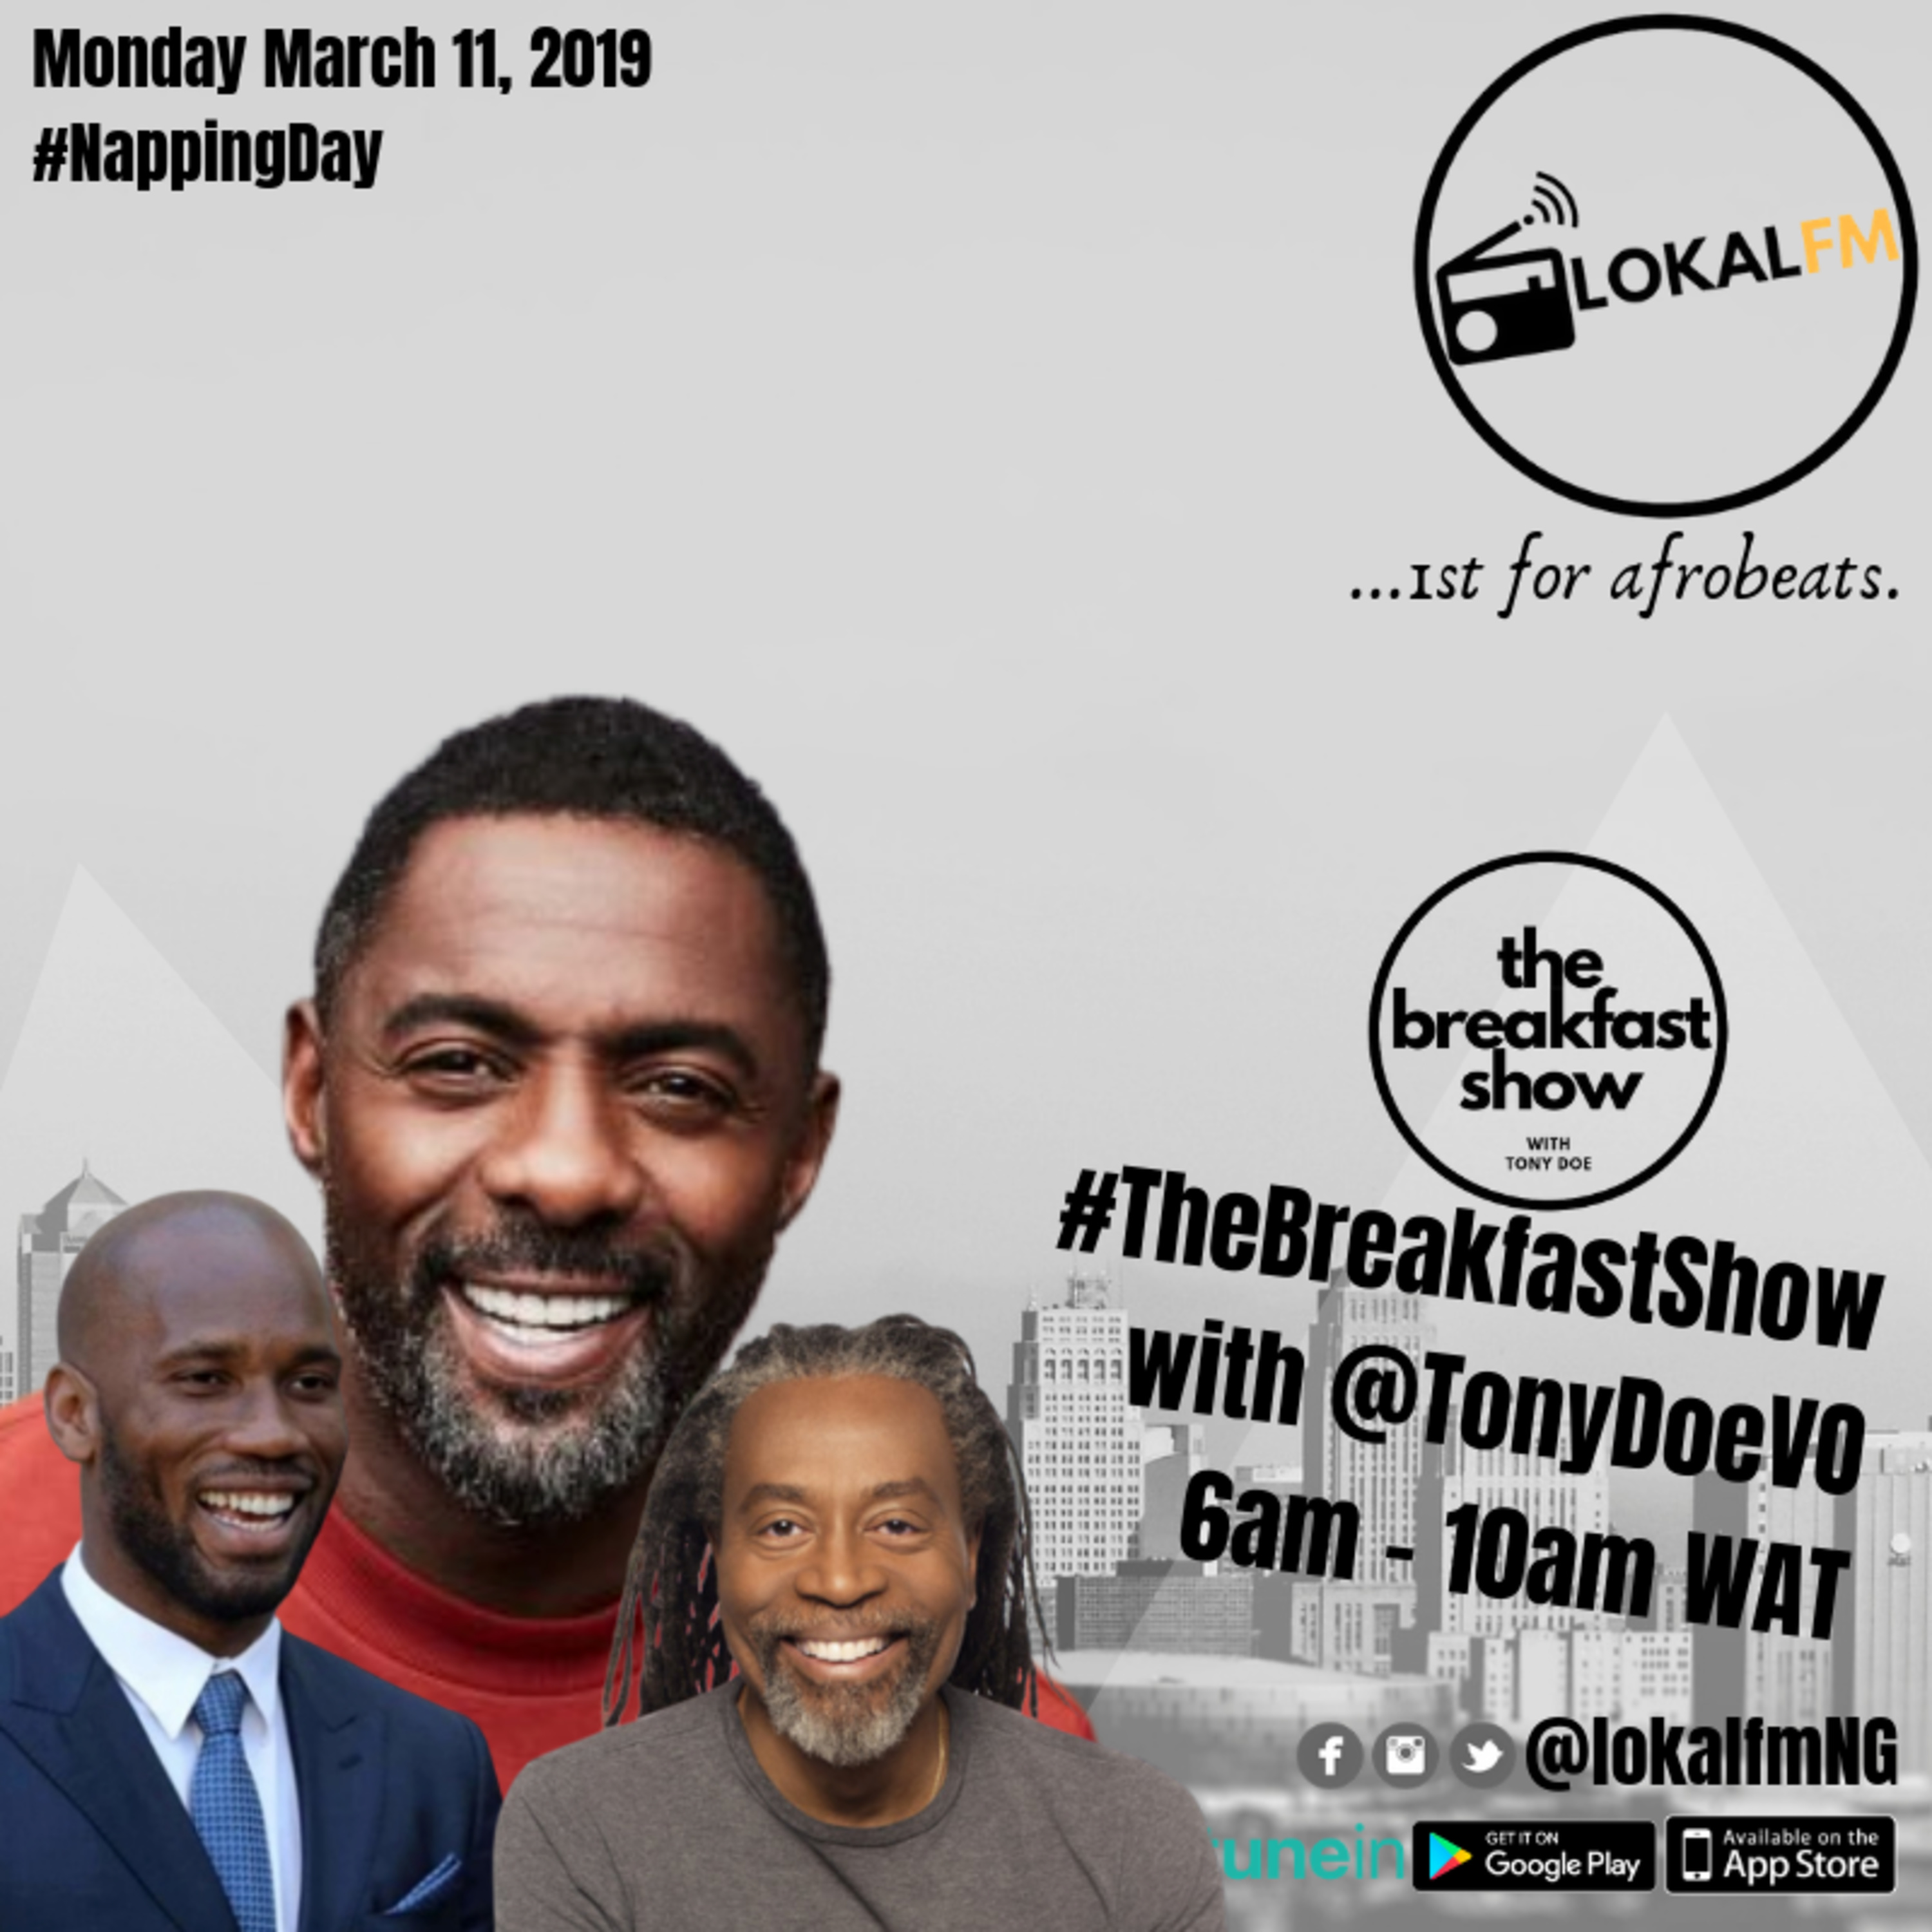 #Monday [11-03-19] - THE BREAKFAST SHOW WITH TONY DOE HIGHLIGHTS